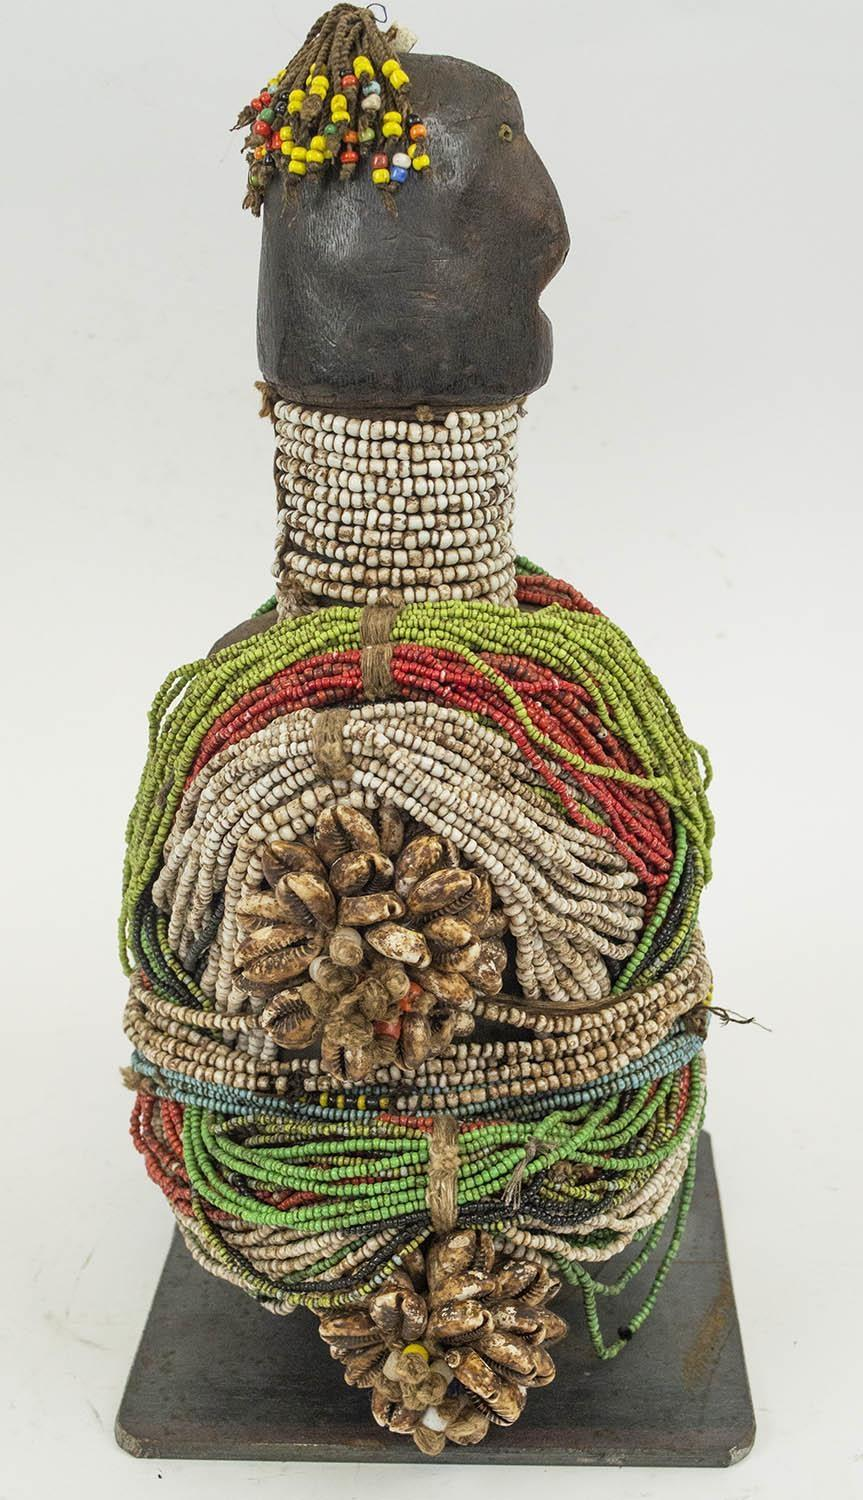 FALI RITUAL DOLL, from Cameroon, adorned with beads and cowrie shells, 40cm H. - Image 4 of 4